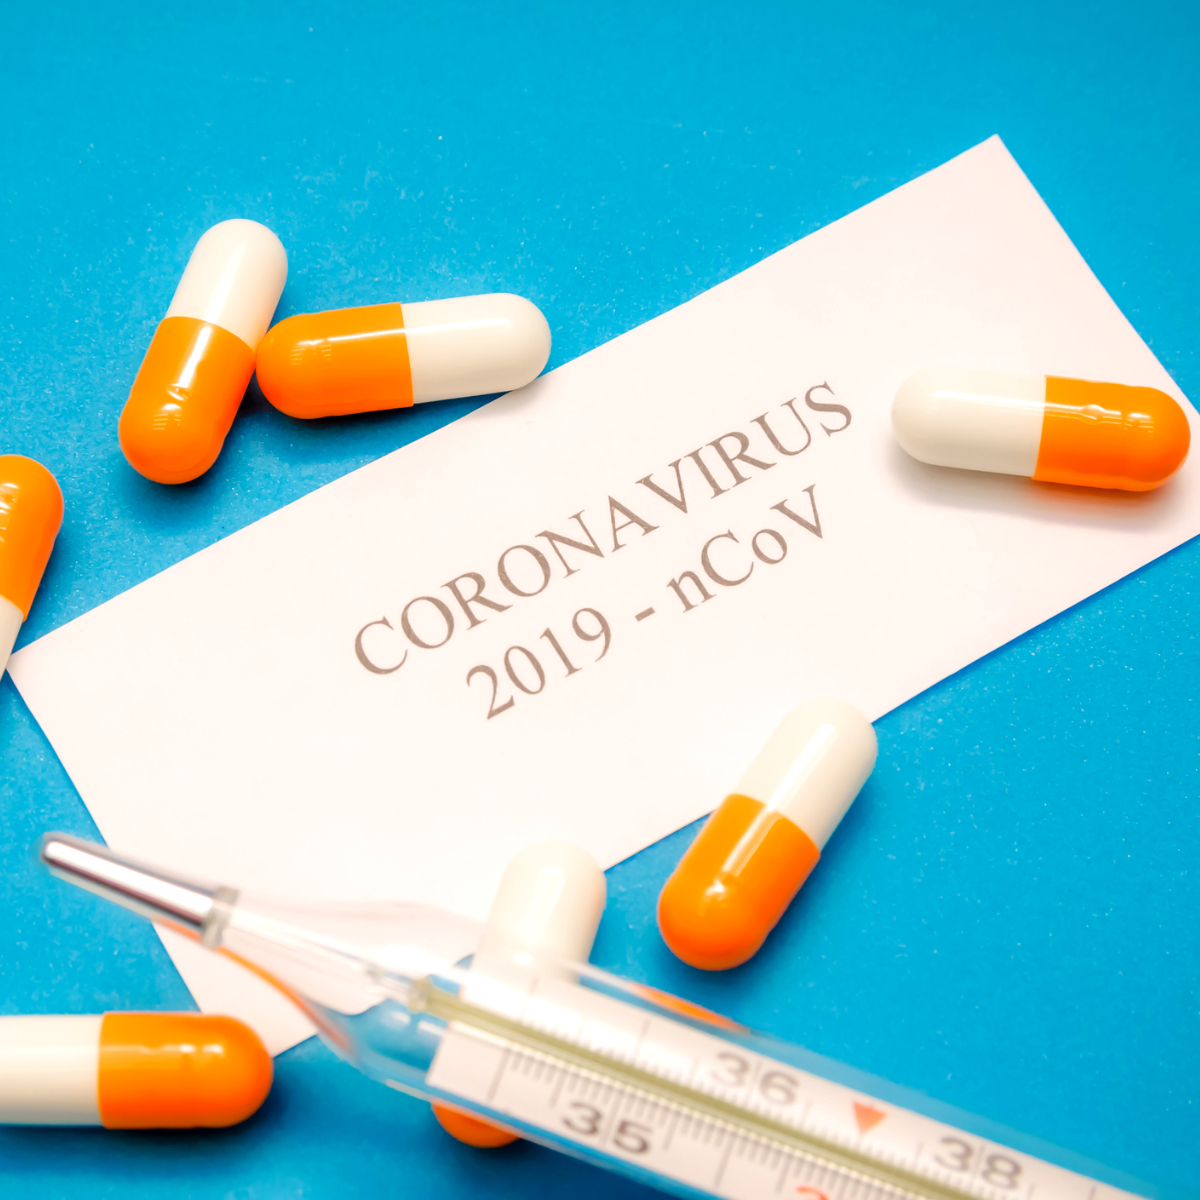 Coronavirus: How to prevent yourselves from the deadly virus and DOs and DON'Ts of 2019 nCoV